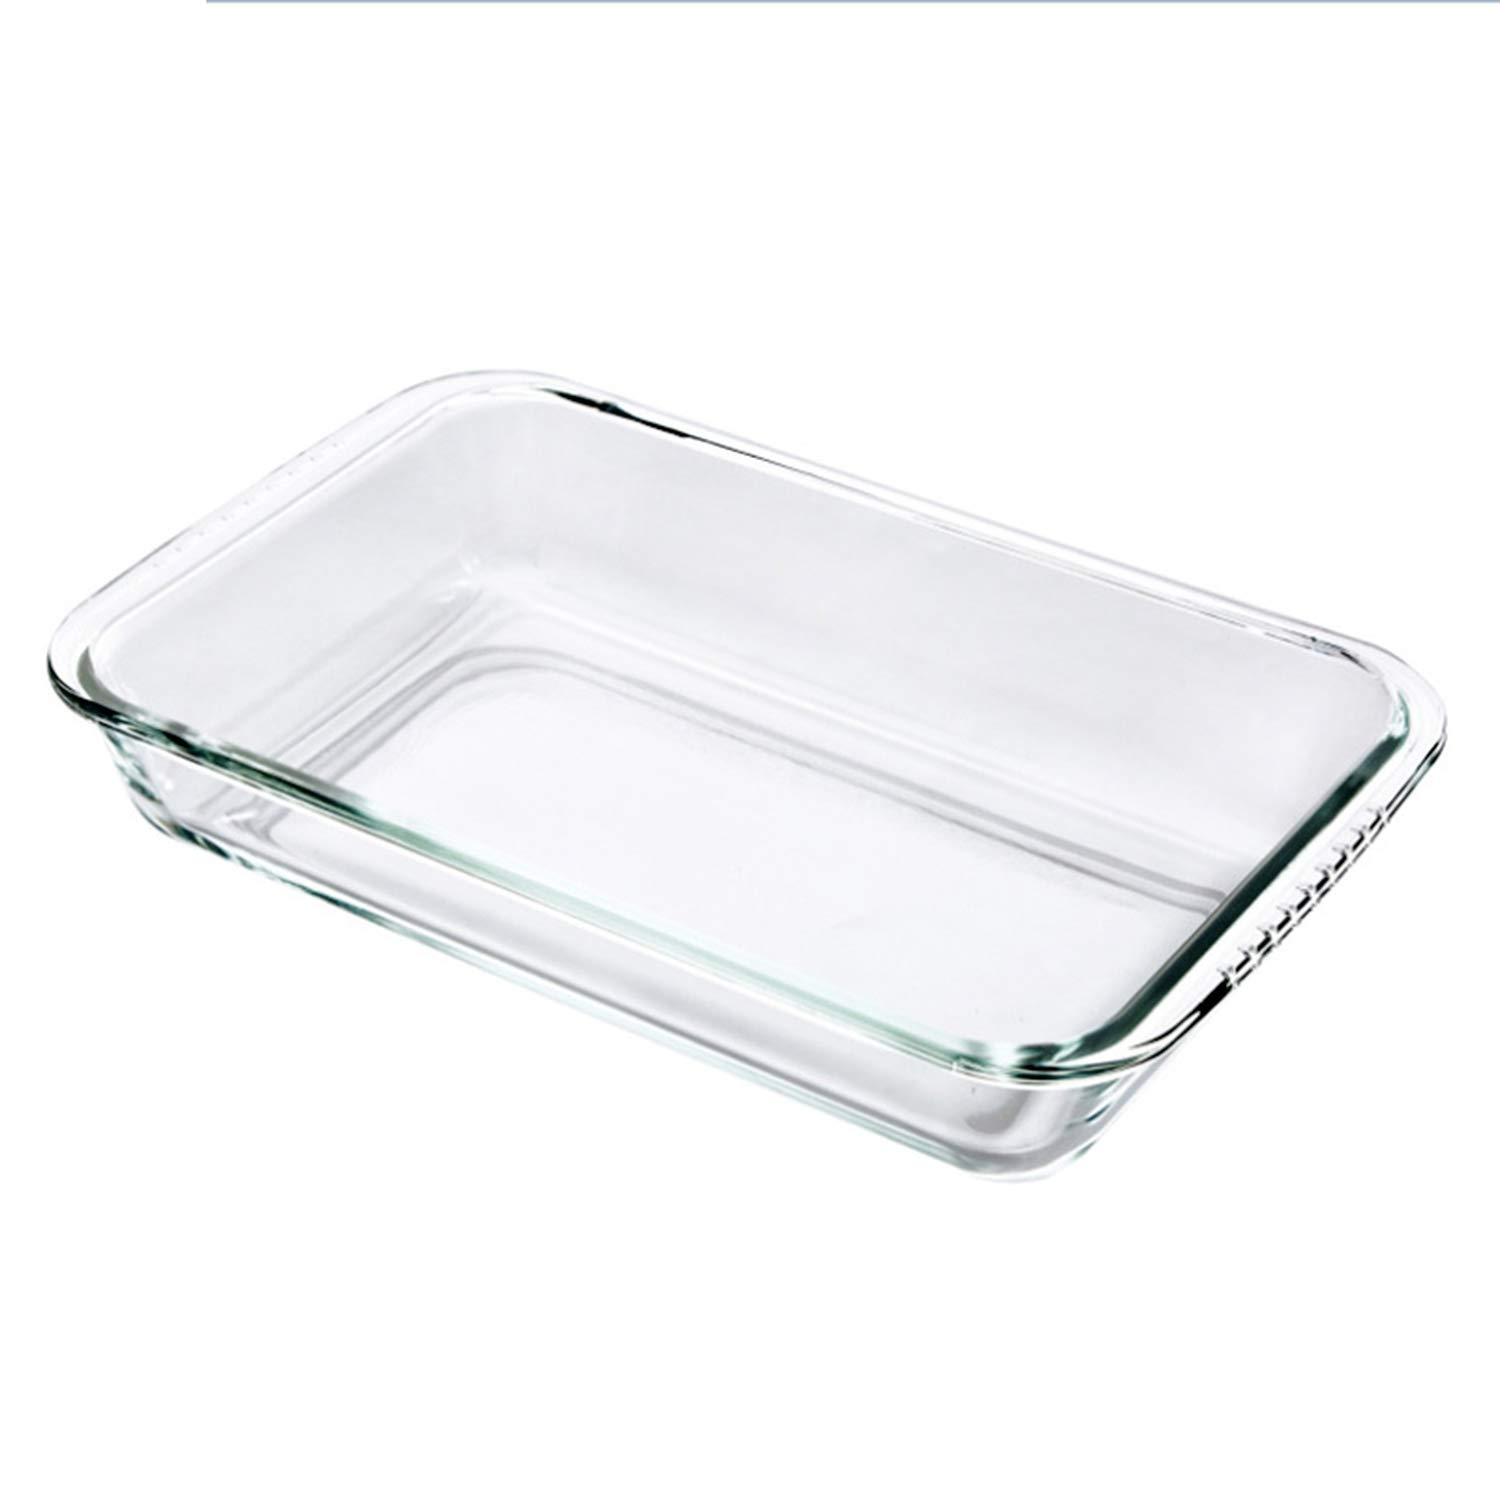 Clear Oblong Toughened Glass Baking Dishes Pan Oven Bakeware Non Stick Kitchen Tool Cheese Tray